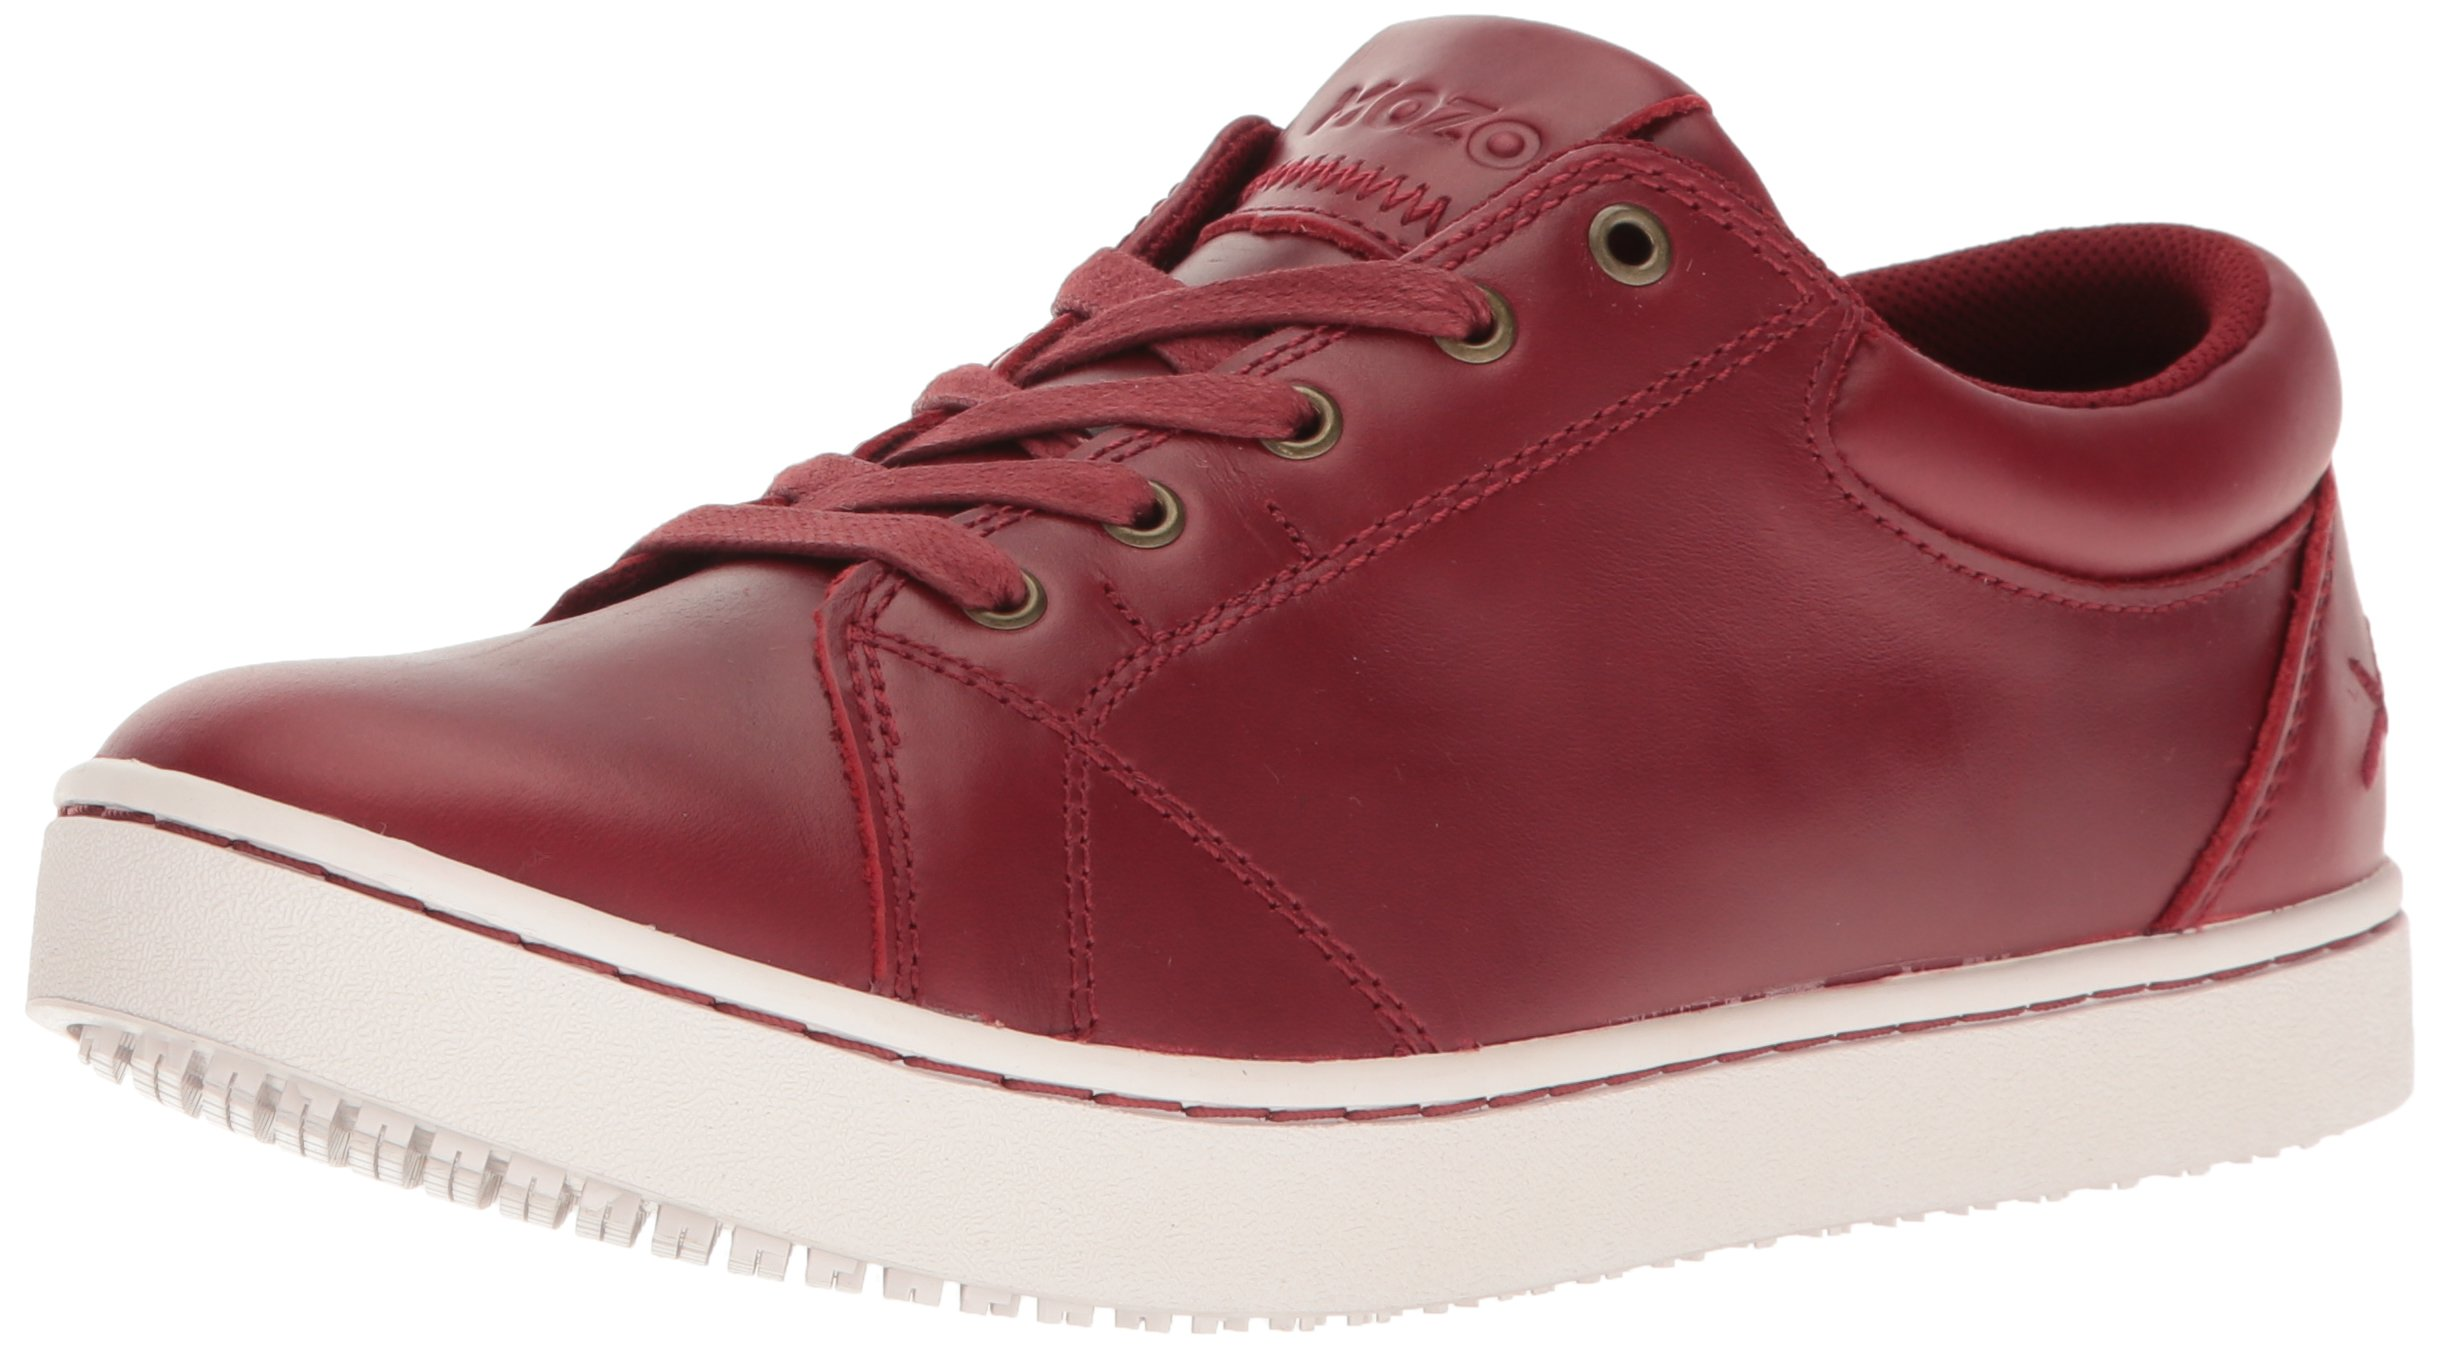 MOZO Women's Mavi Food Service Shoe, Red, 10 B US